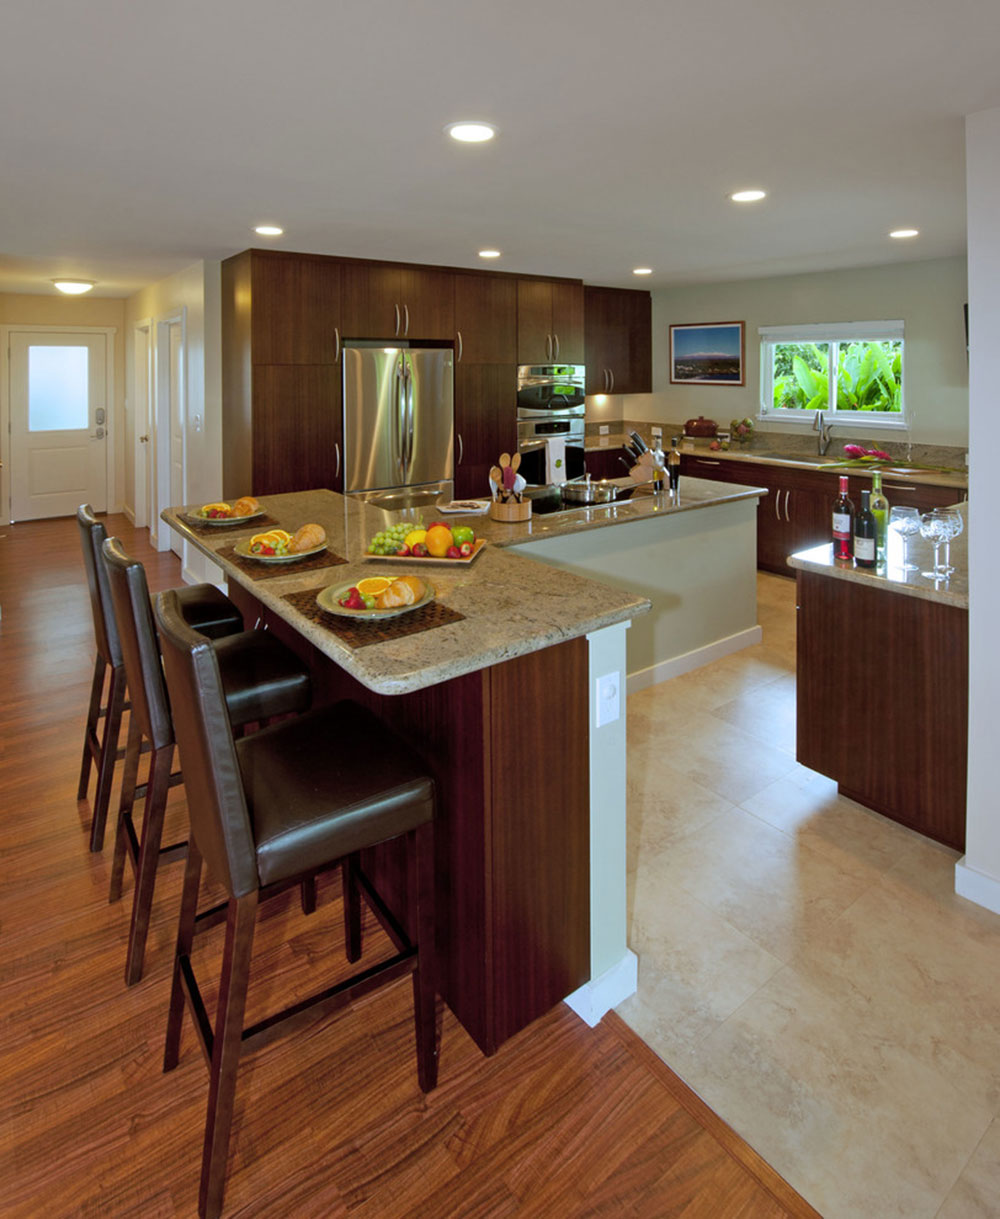 Kitchen-n-Bathroom-Remodel-Hawaii-by-Ferguson-Bath-Kitchen-n-Lighting-Gallery1 Ideas for L-shaped kitchen islands that you can try out in your kitchen